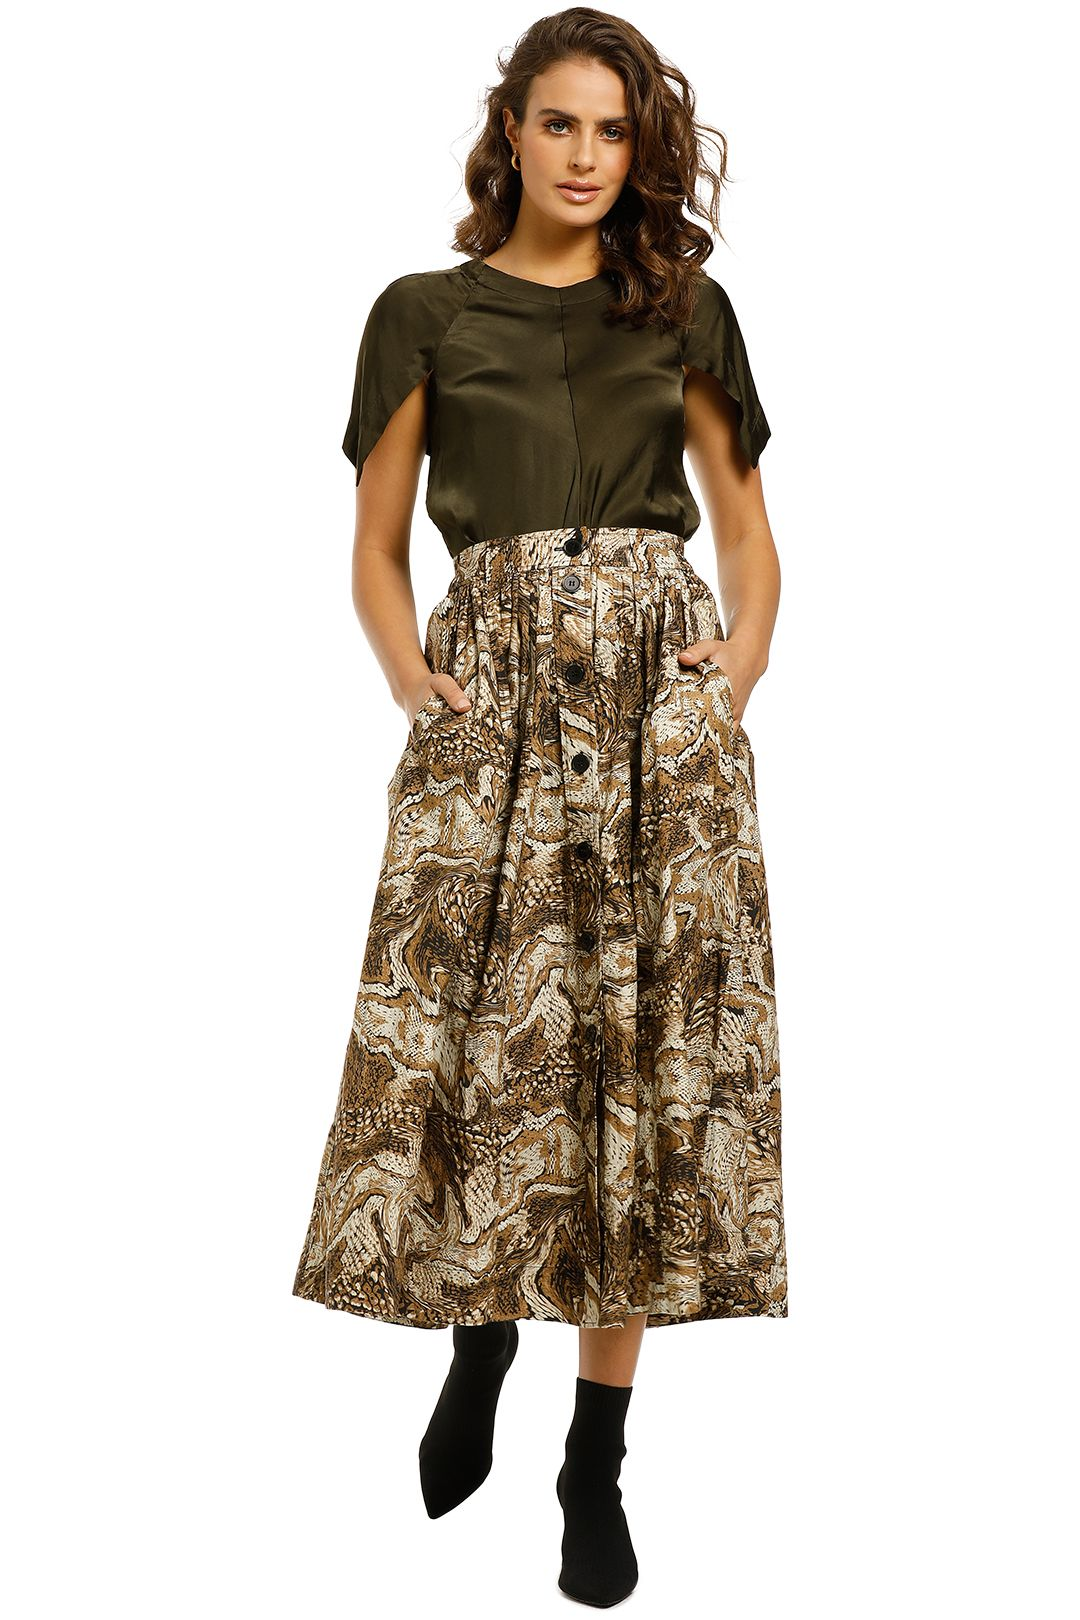 Ganni-Graphic-Print-Skirt-Tiger-Front